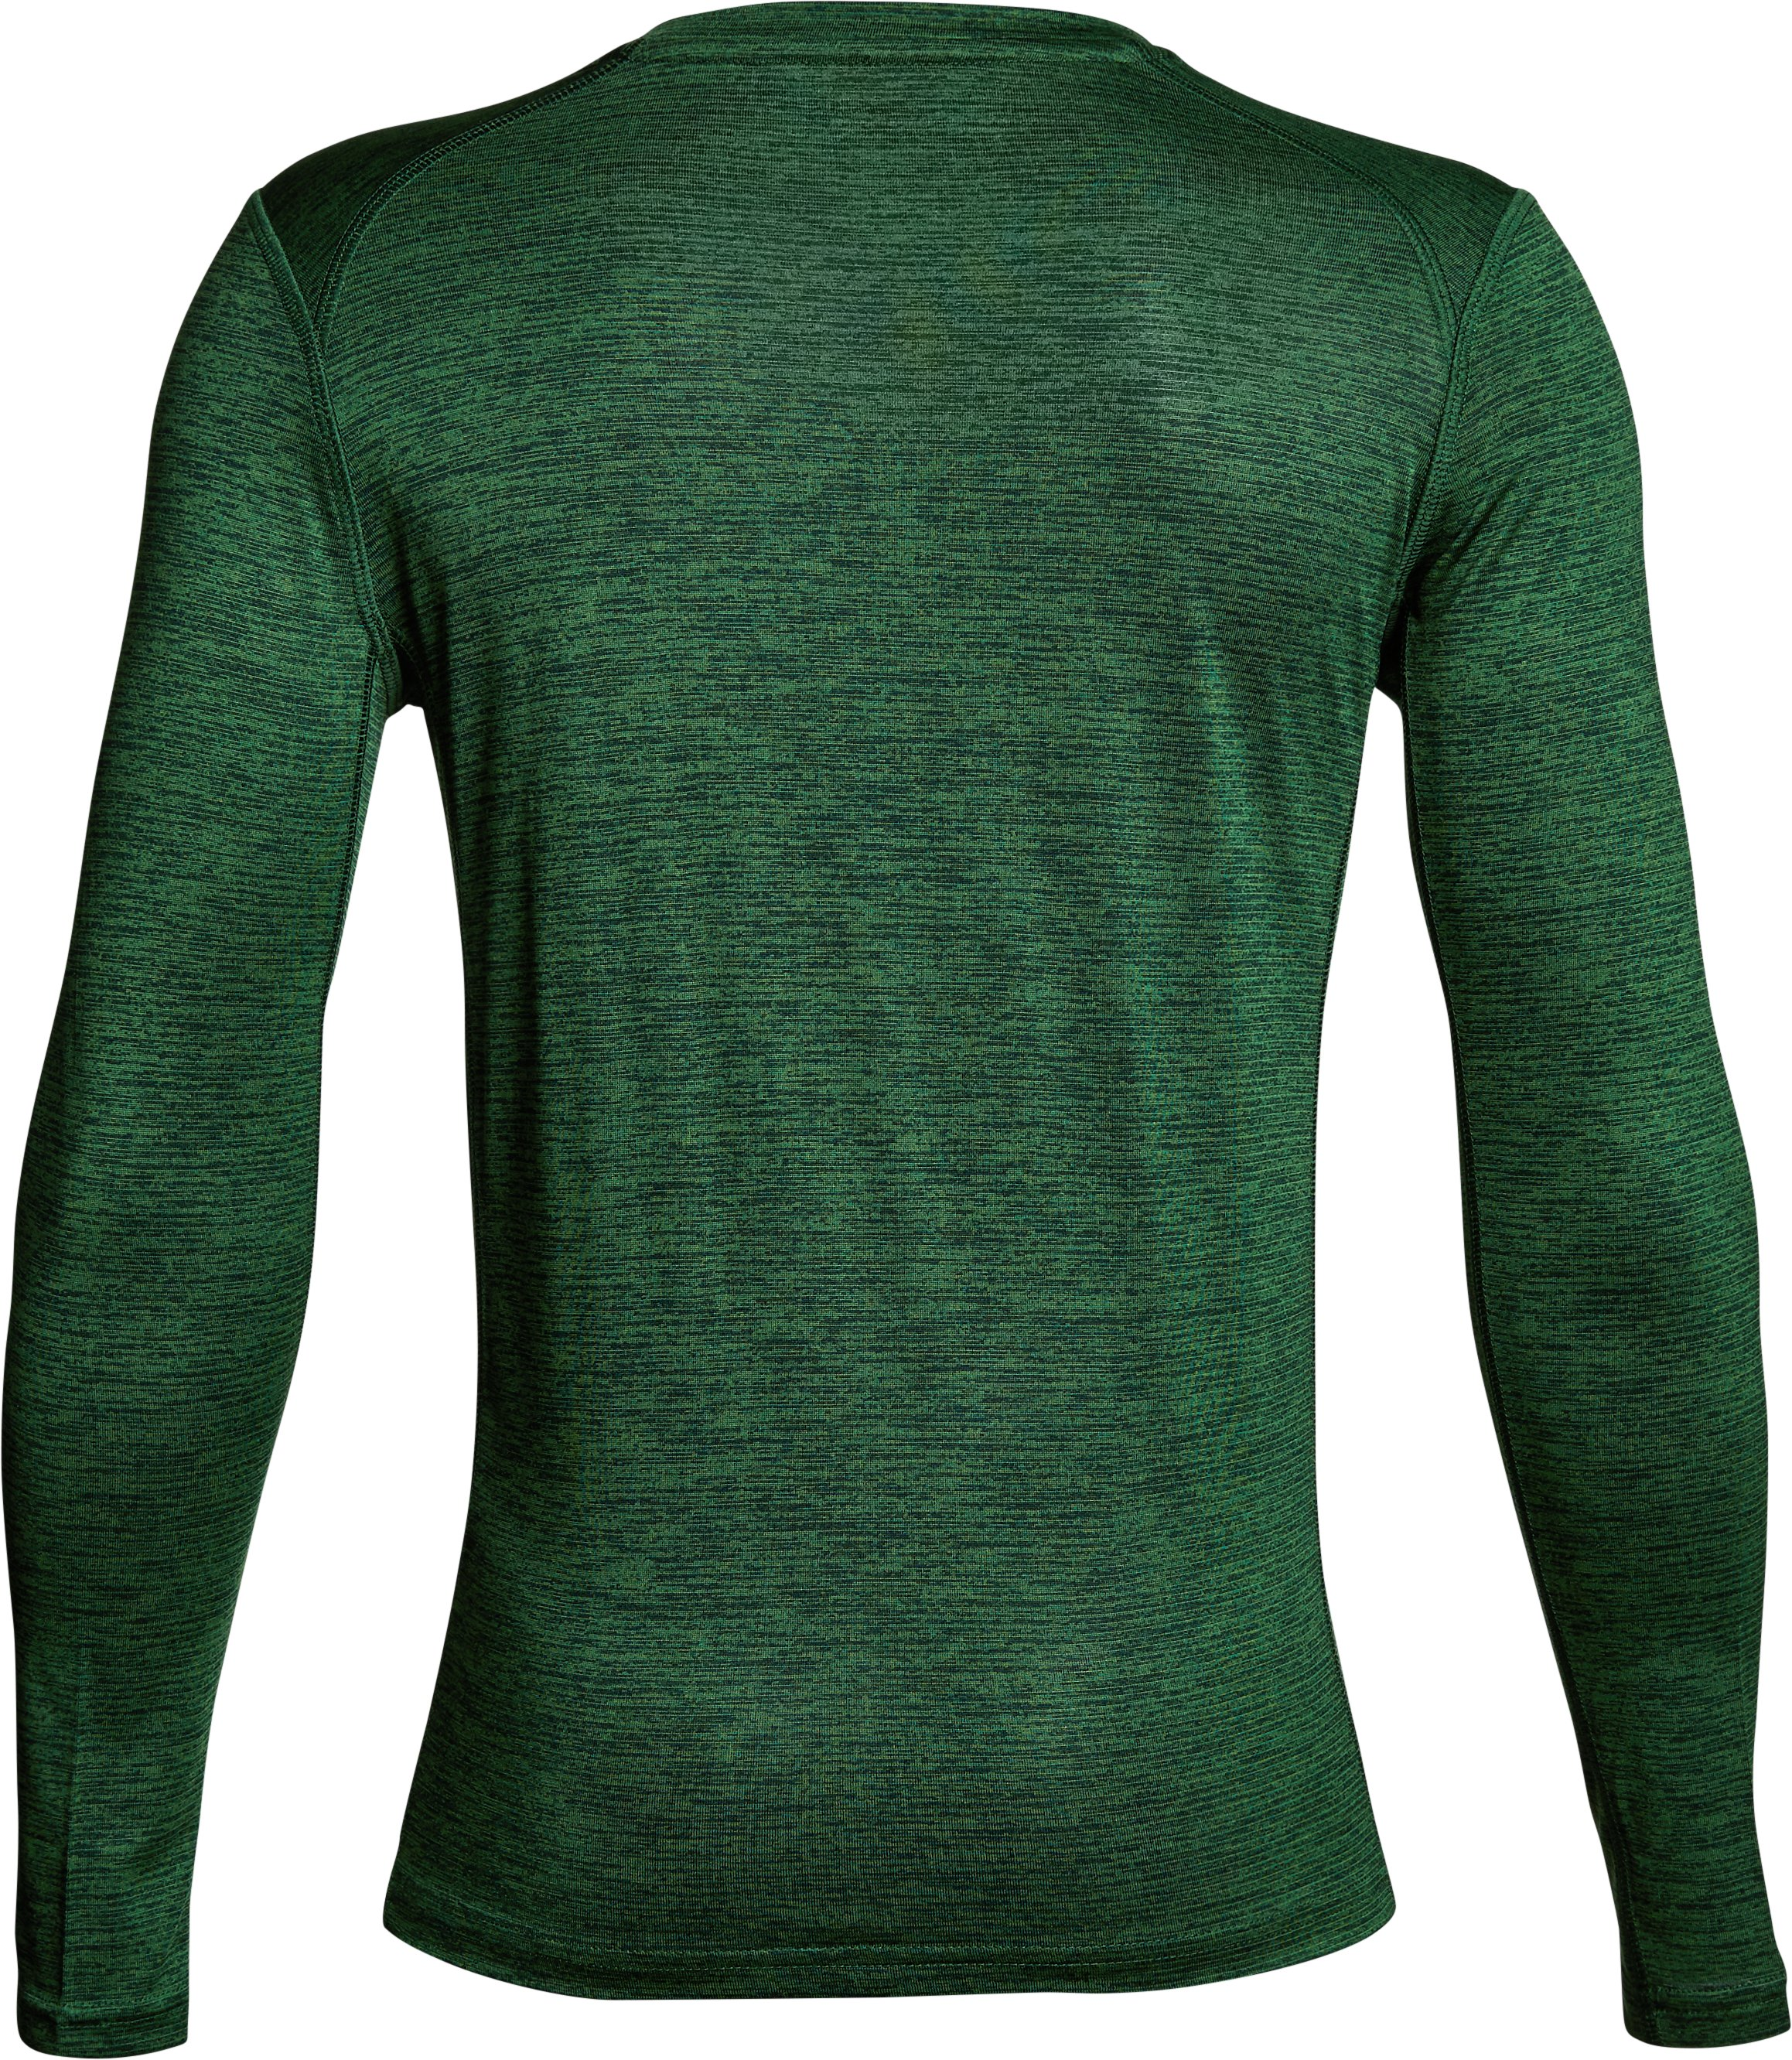 Boys' South Florida Long Sleeve Training T-Shirt, Forest Green,